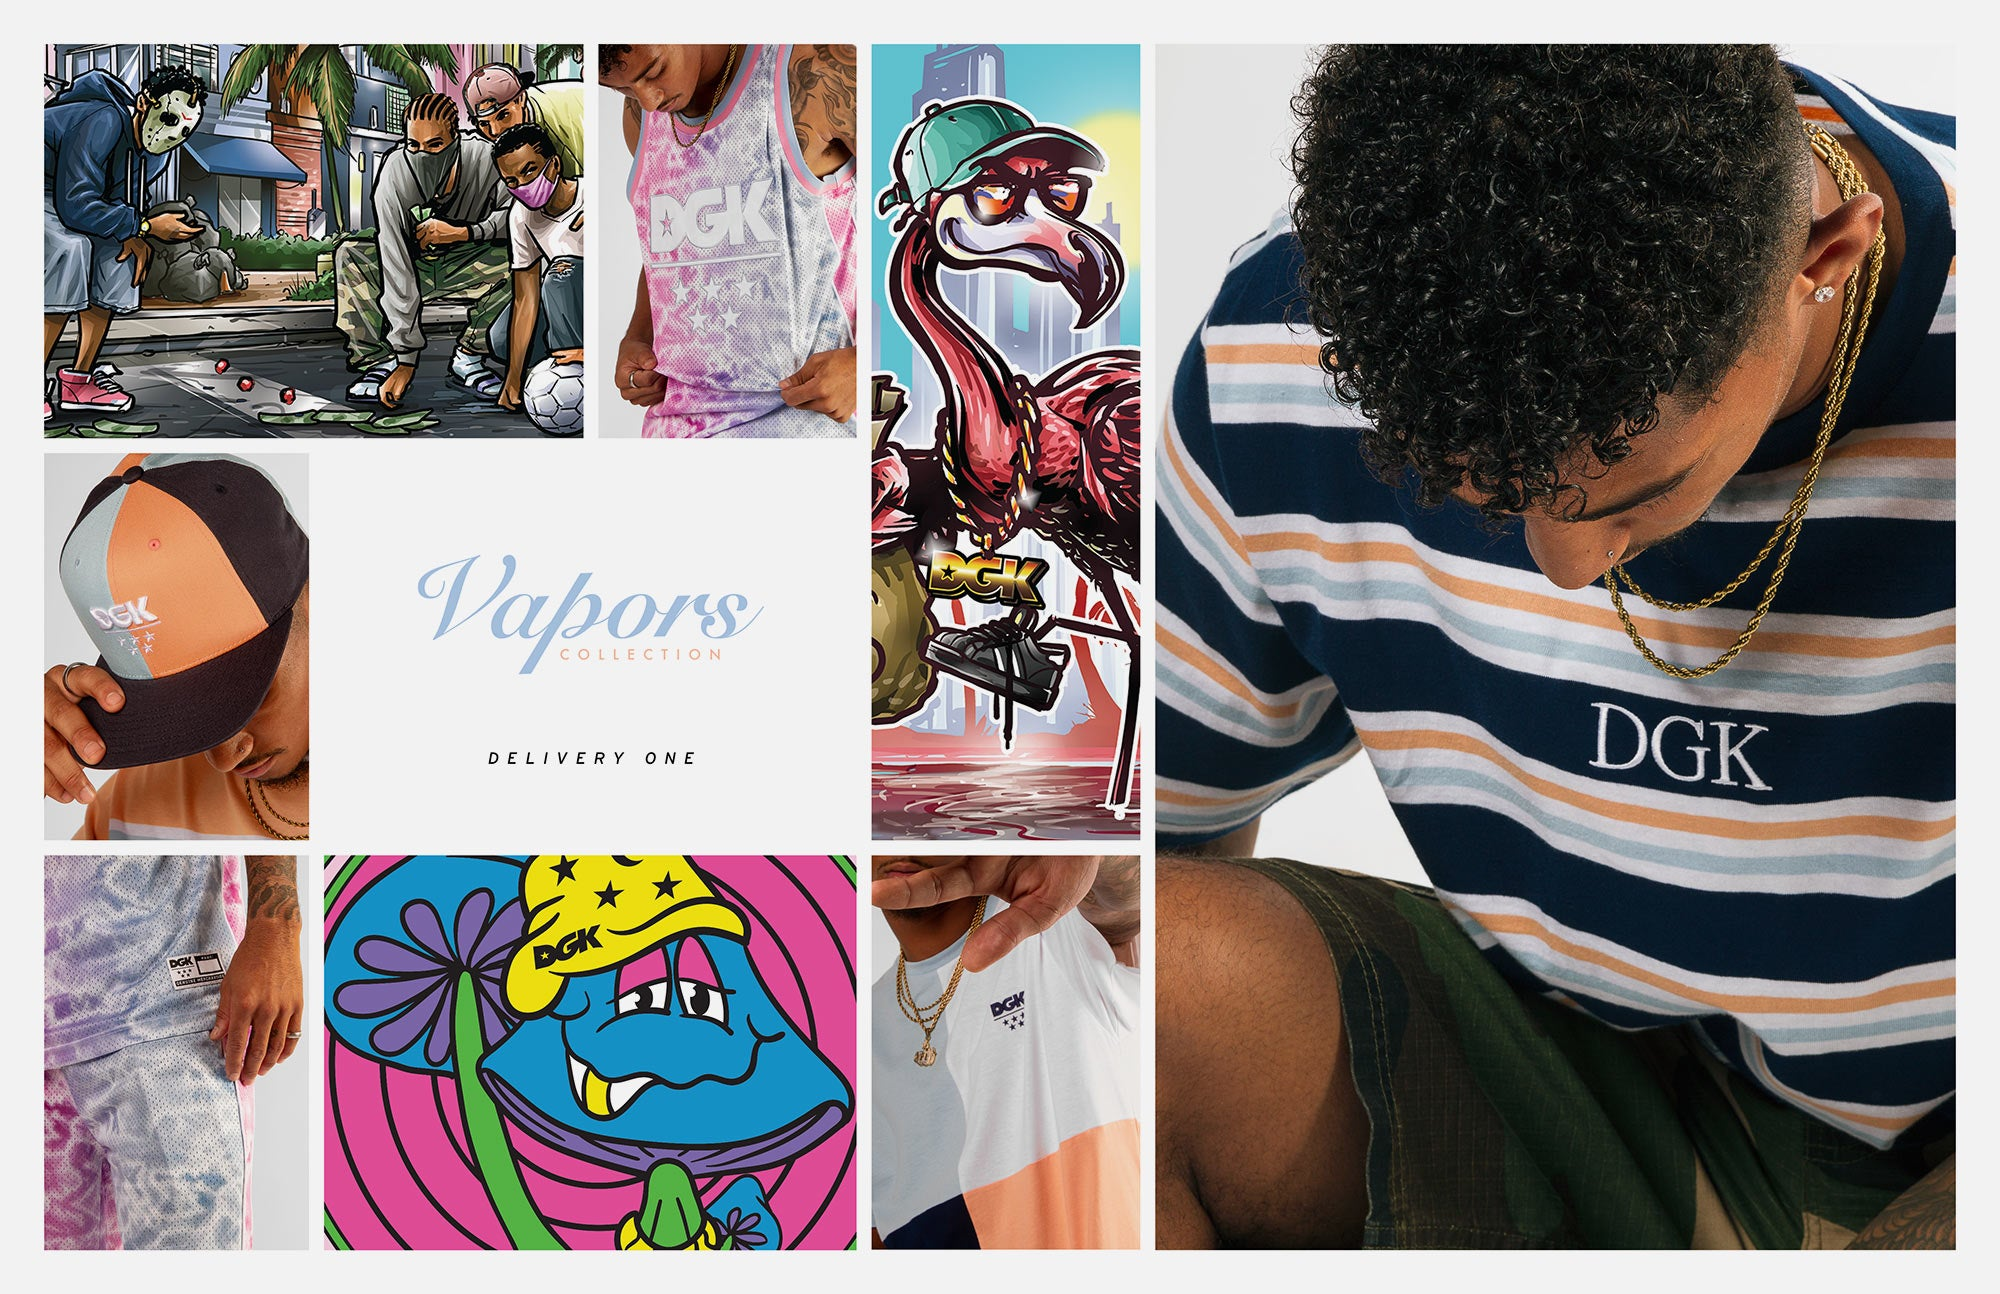 DGK Vapors Collection